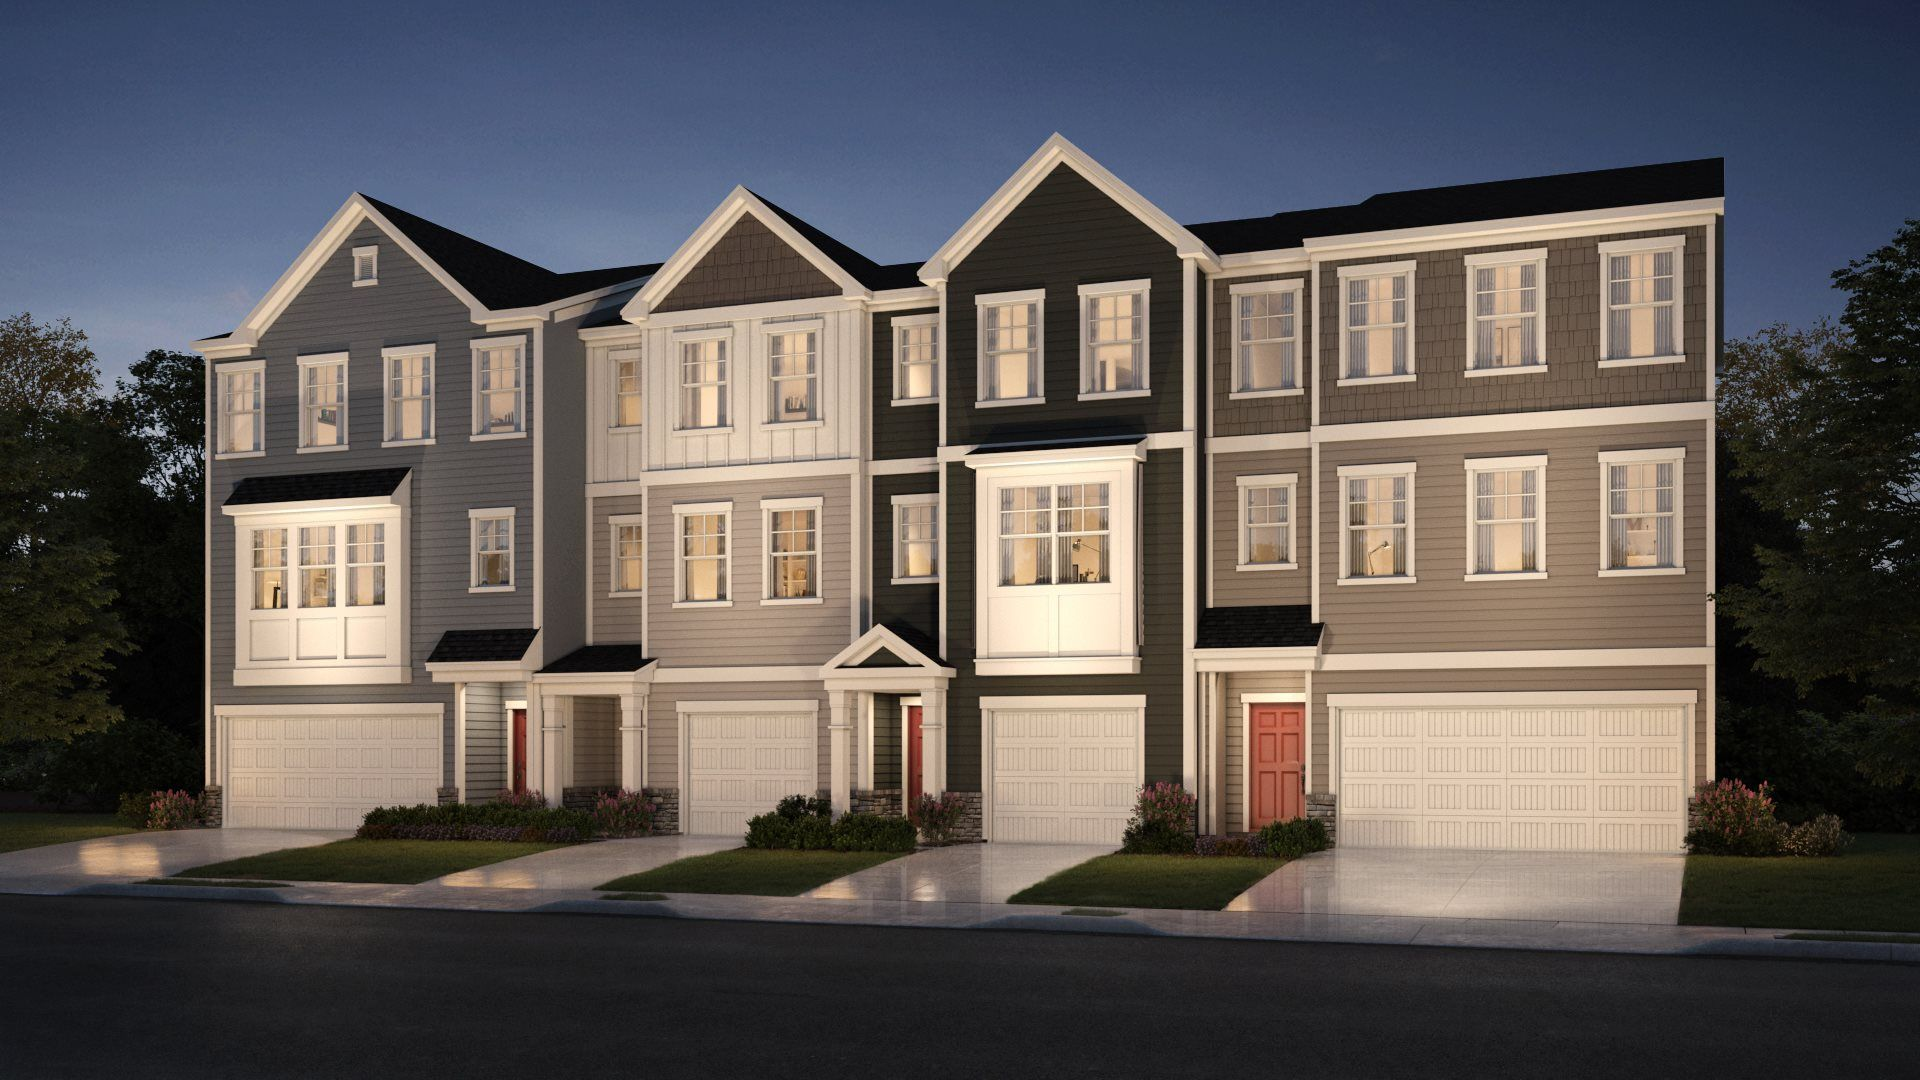 Pointe at Stratford Lakes - New Homes in Durham